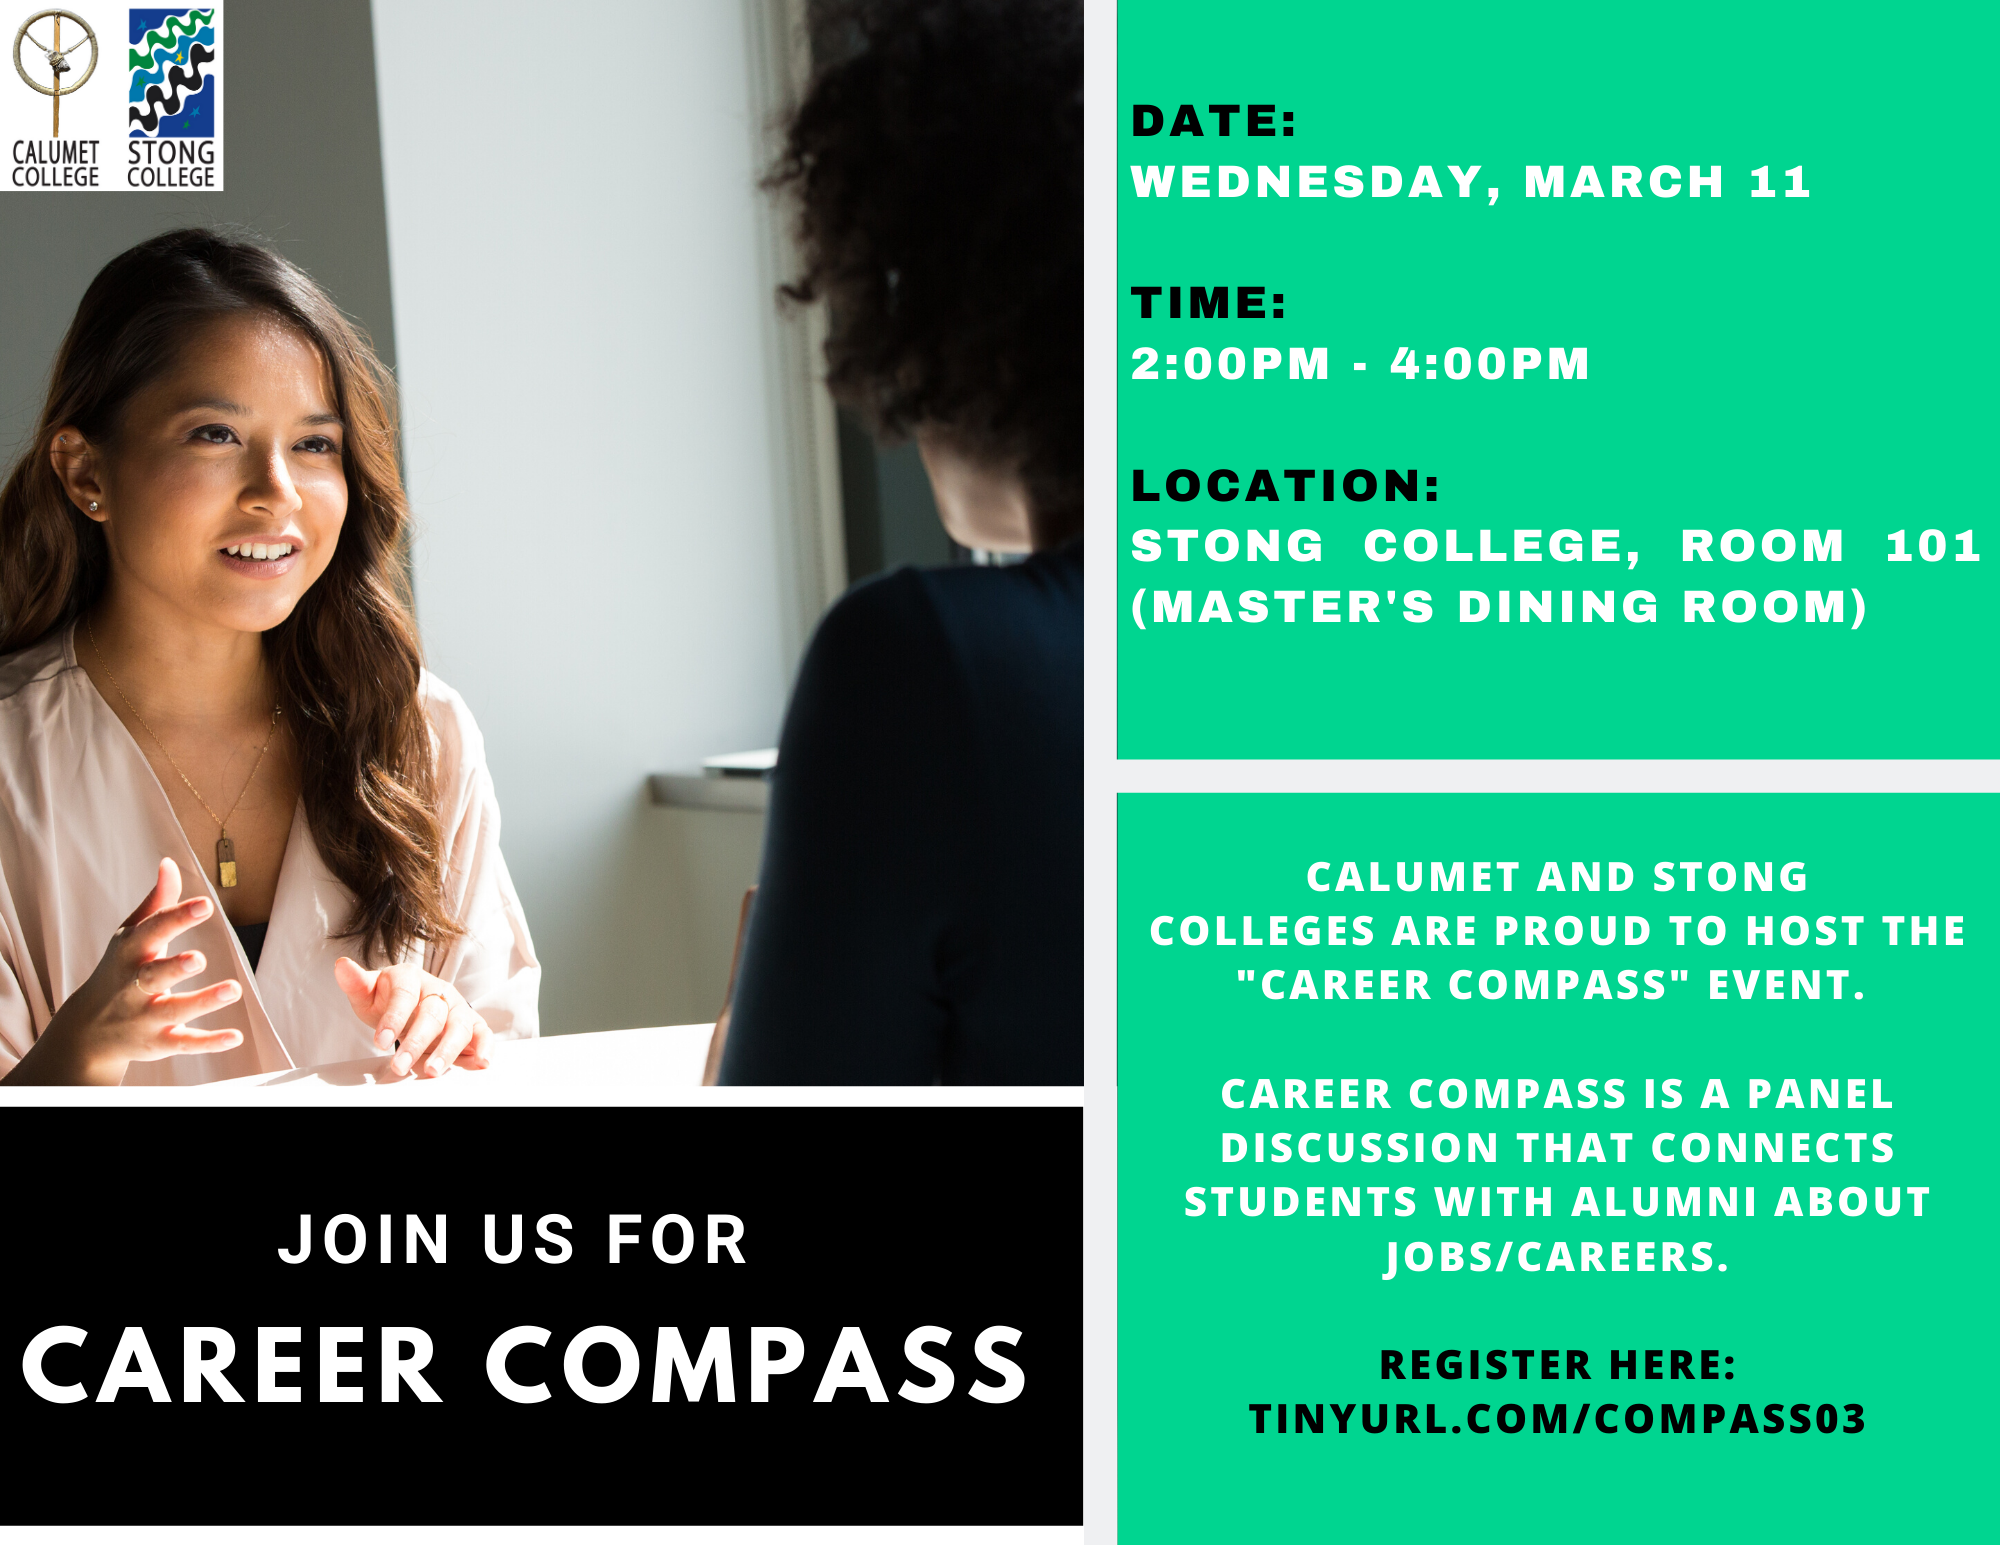 Career Compass @ Stong College, Room 101 (Master's Dining Room (MDR)